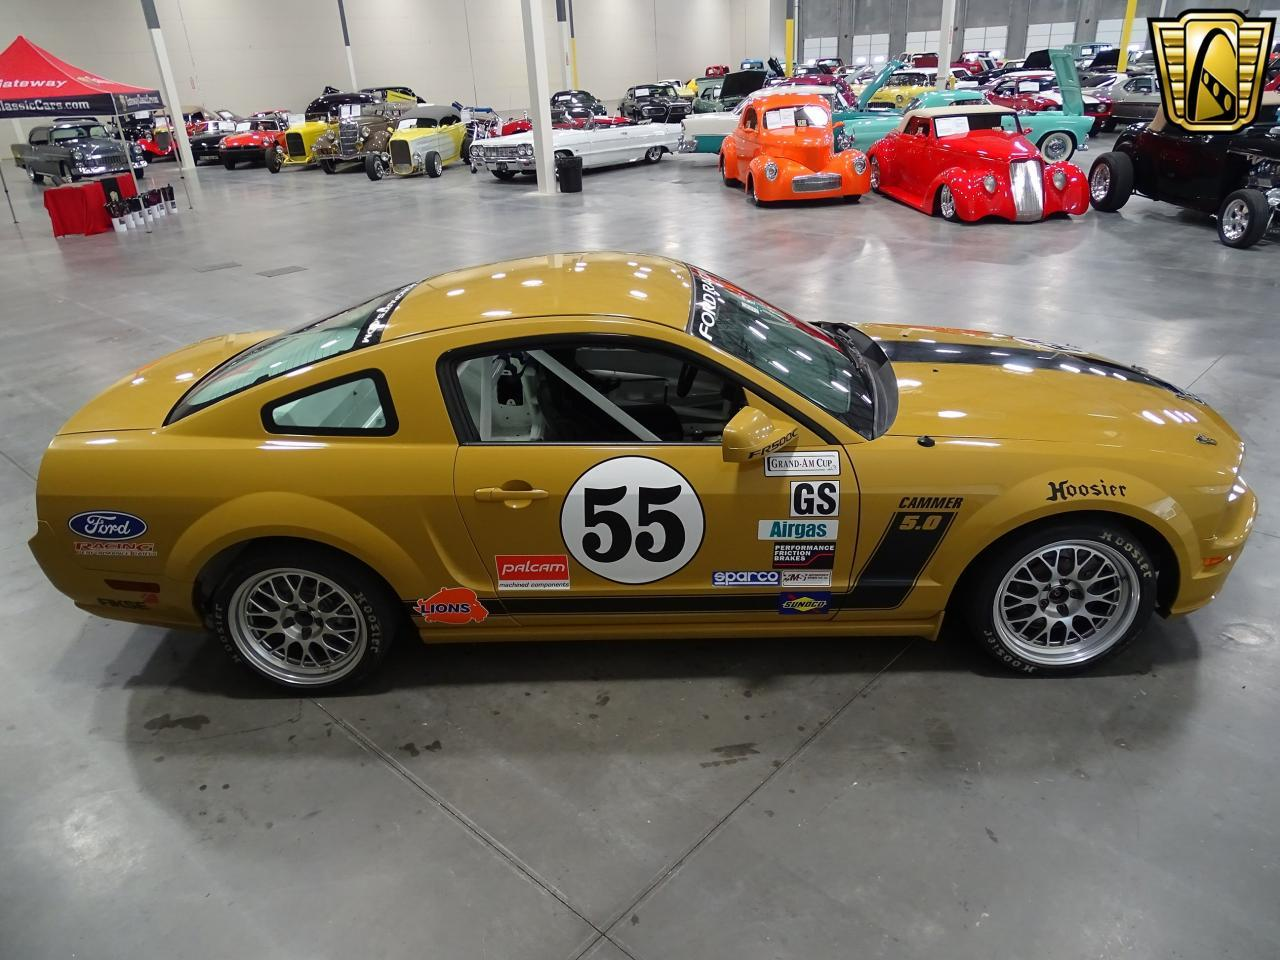 Large Picture of 2005 Mustang located in DFW Airport Texas - $260,000.00 Offered by Gateway Classic Cars - Dallas - KES0